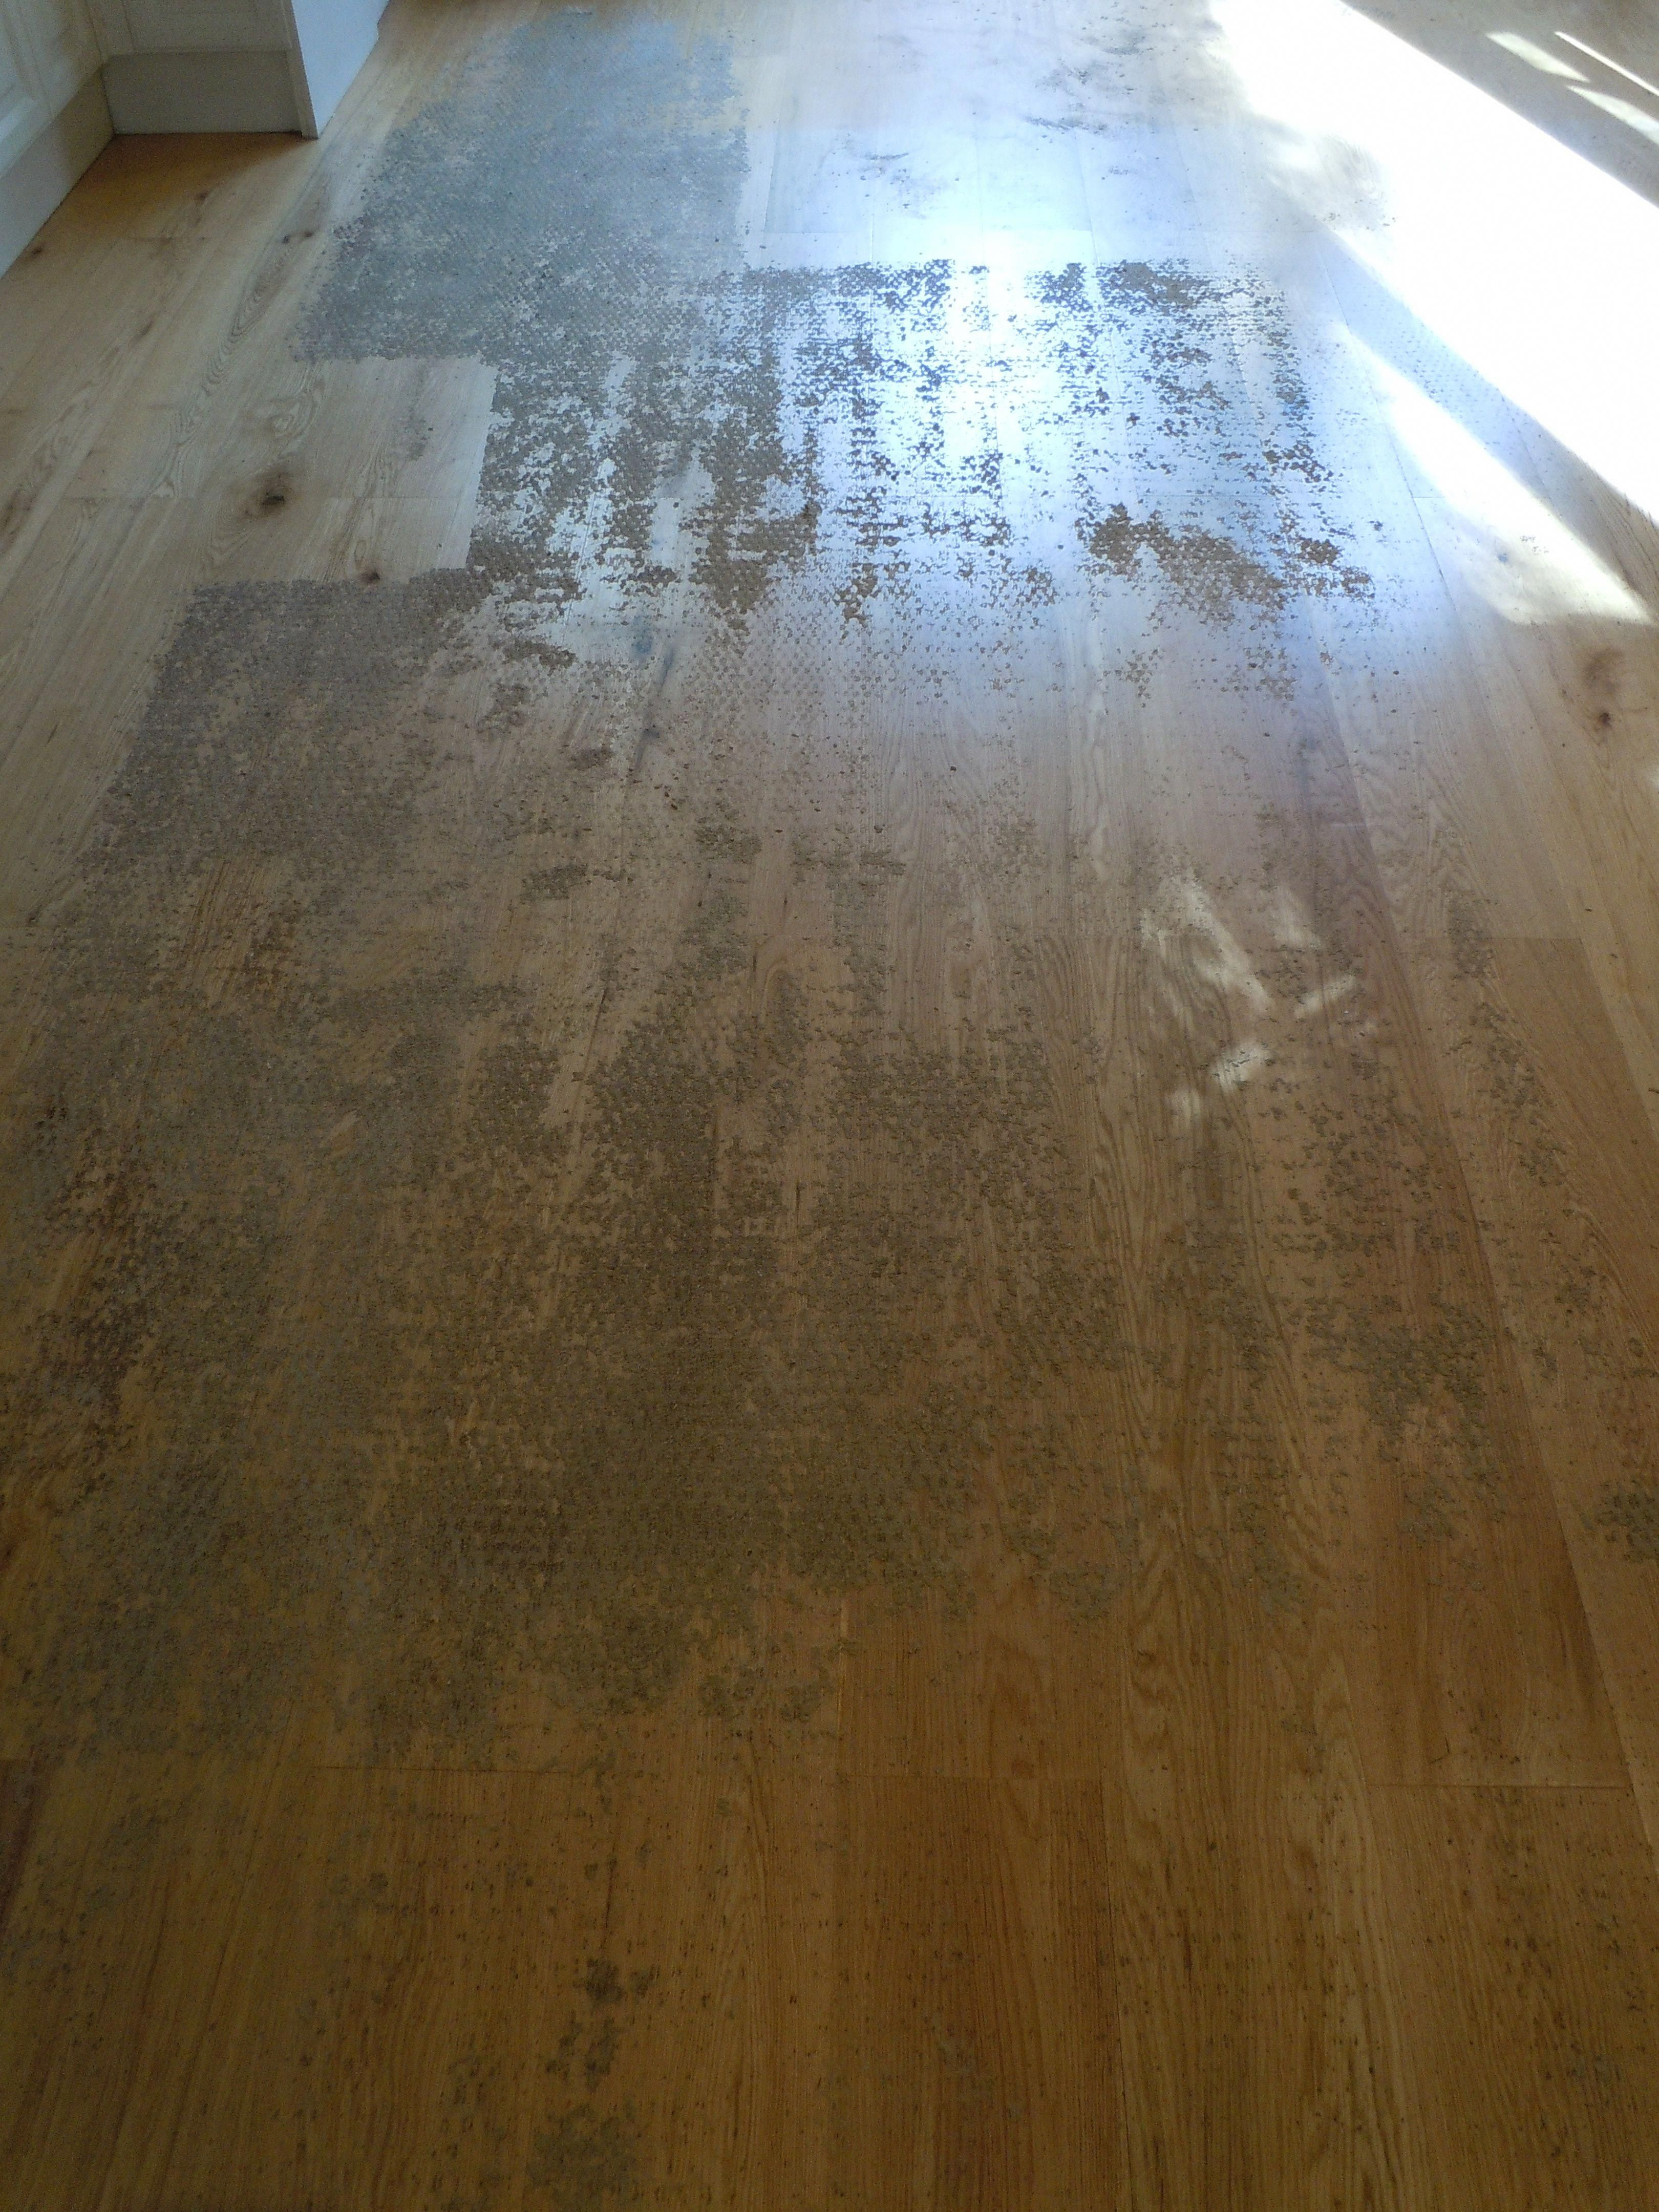 A Guide For Removing Adhesive From Hardwood Flooring Hardwoodflooringhow Cleaning Wood Floors Wood Adhesive Flooring